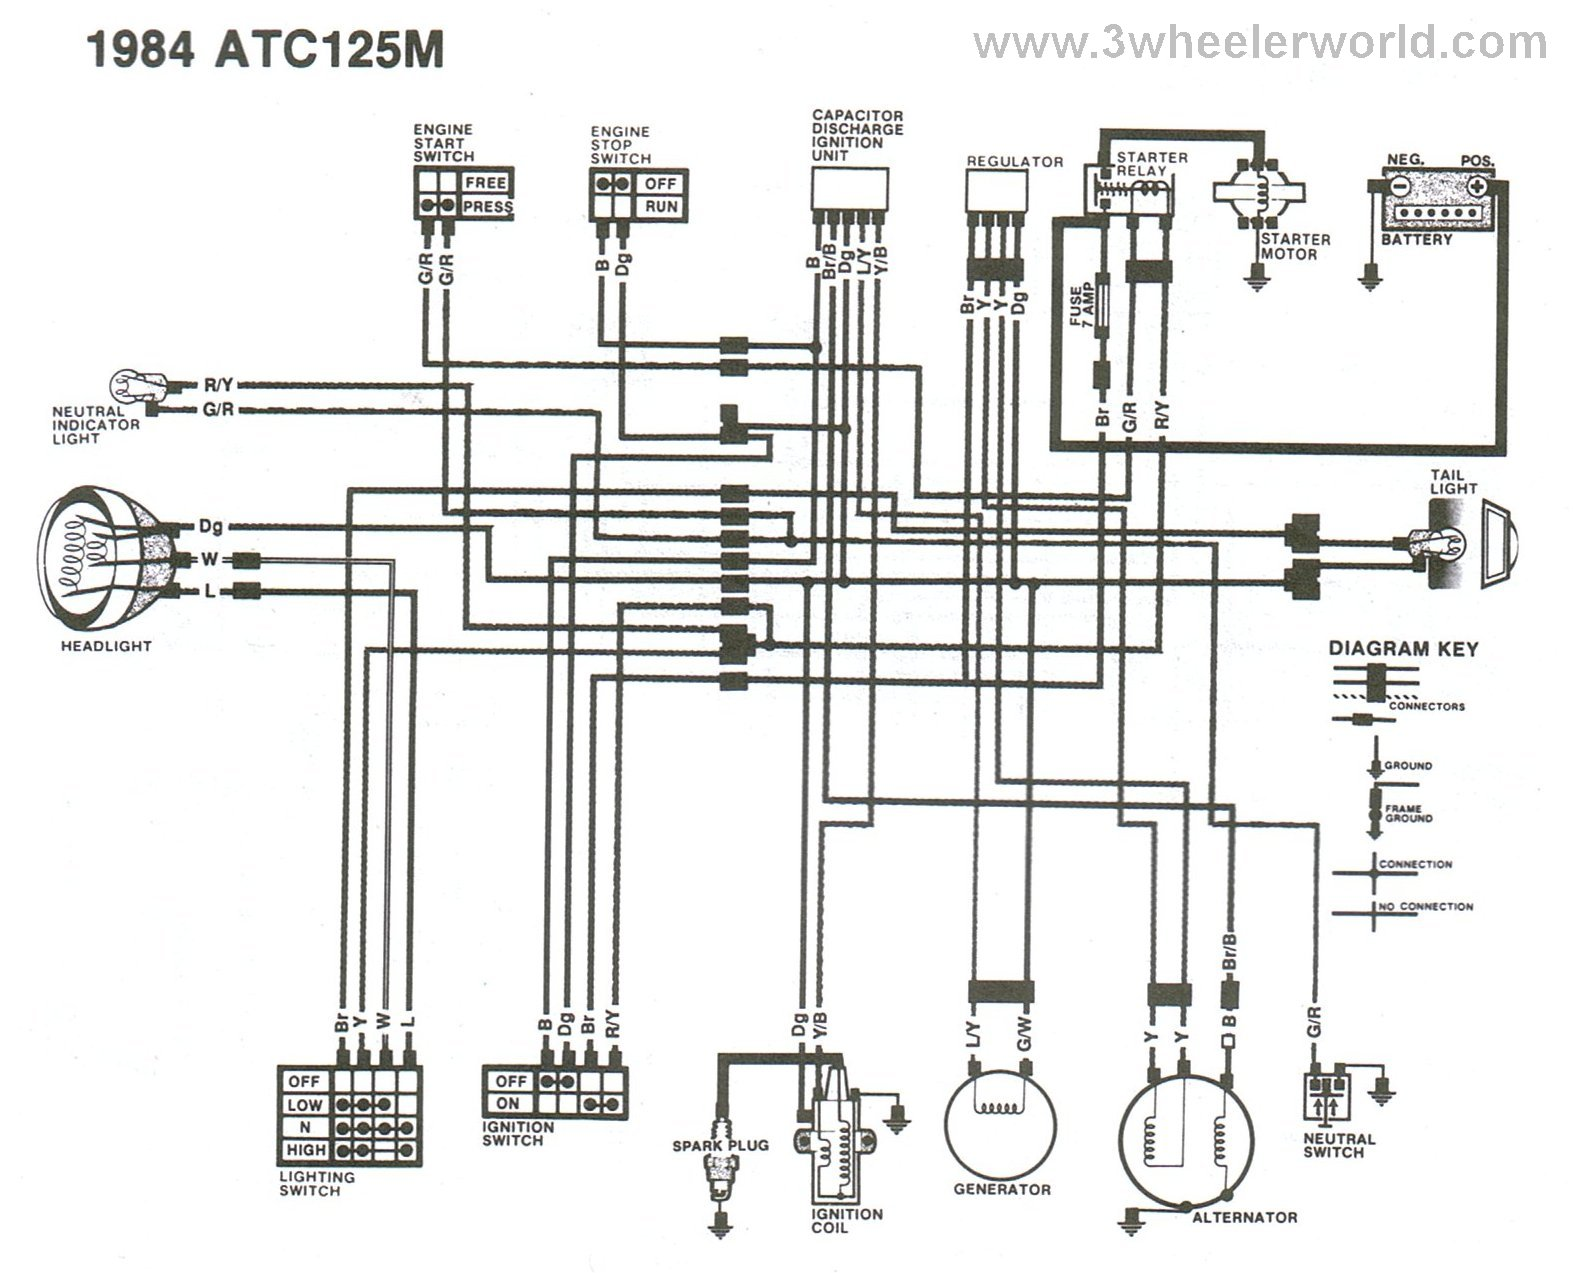 Gy6 5 Wire Rectifier Wiring Diagram : 35 Wiring Diagram